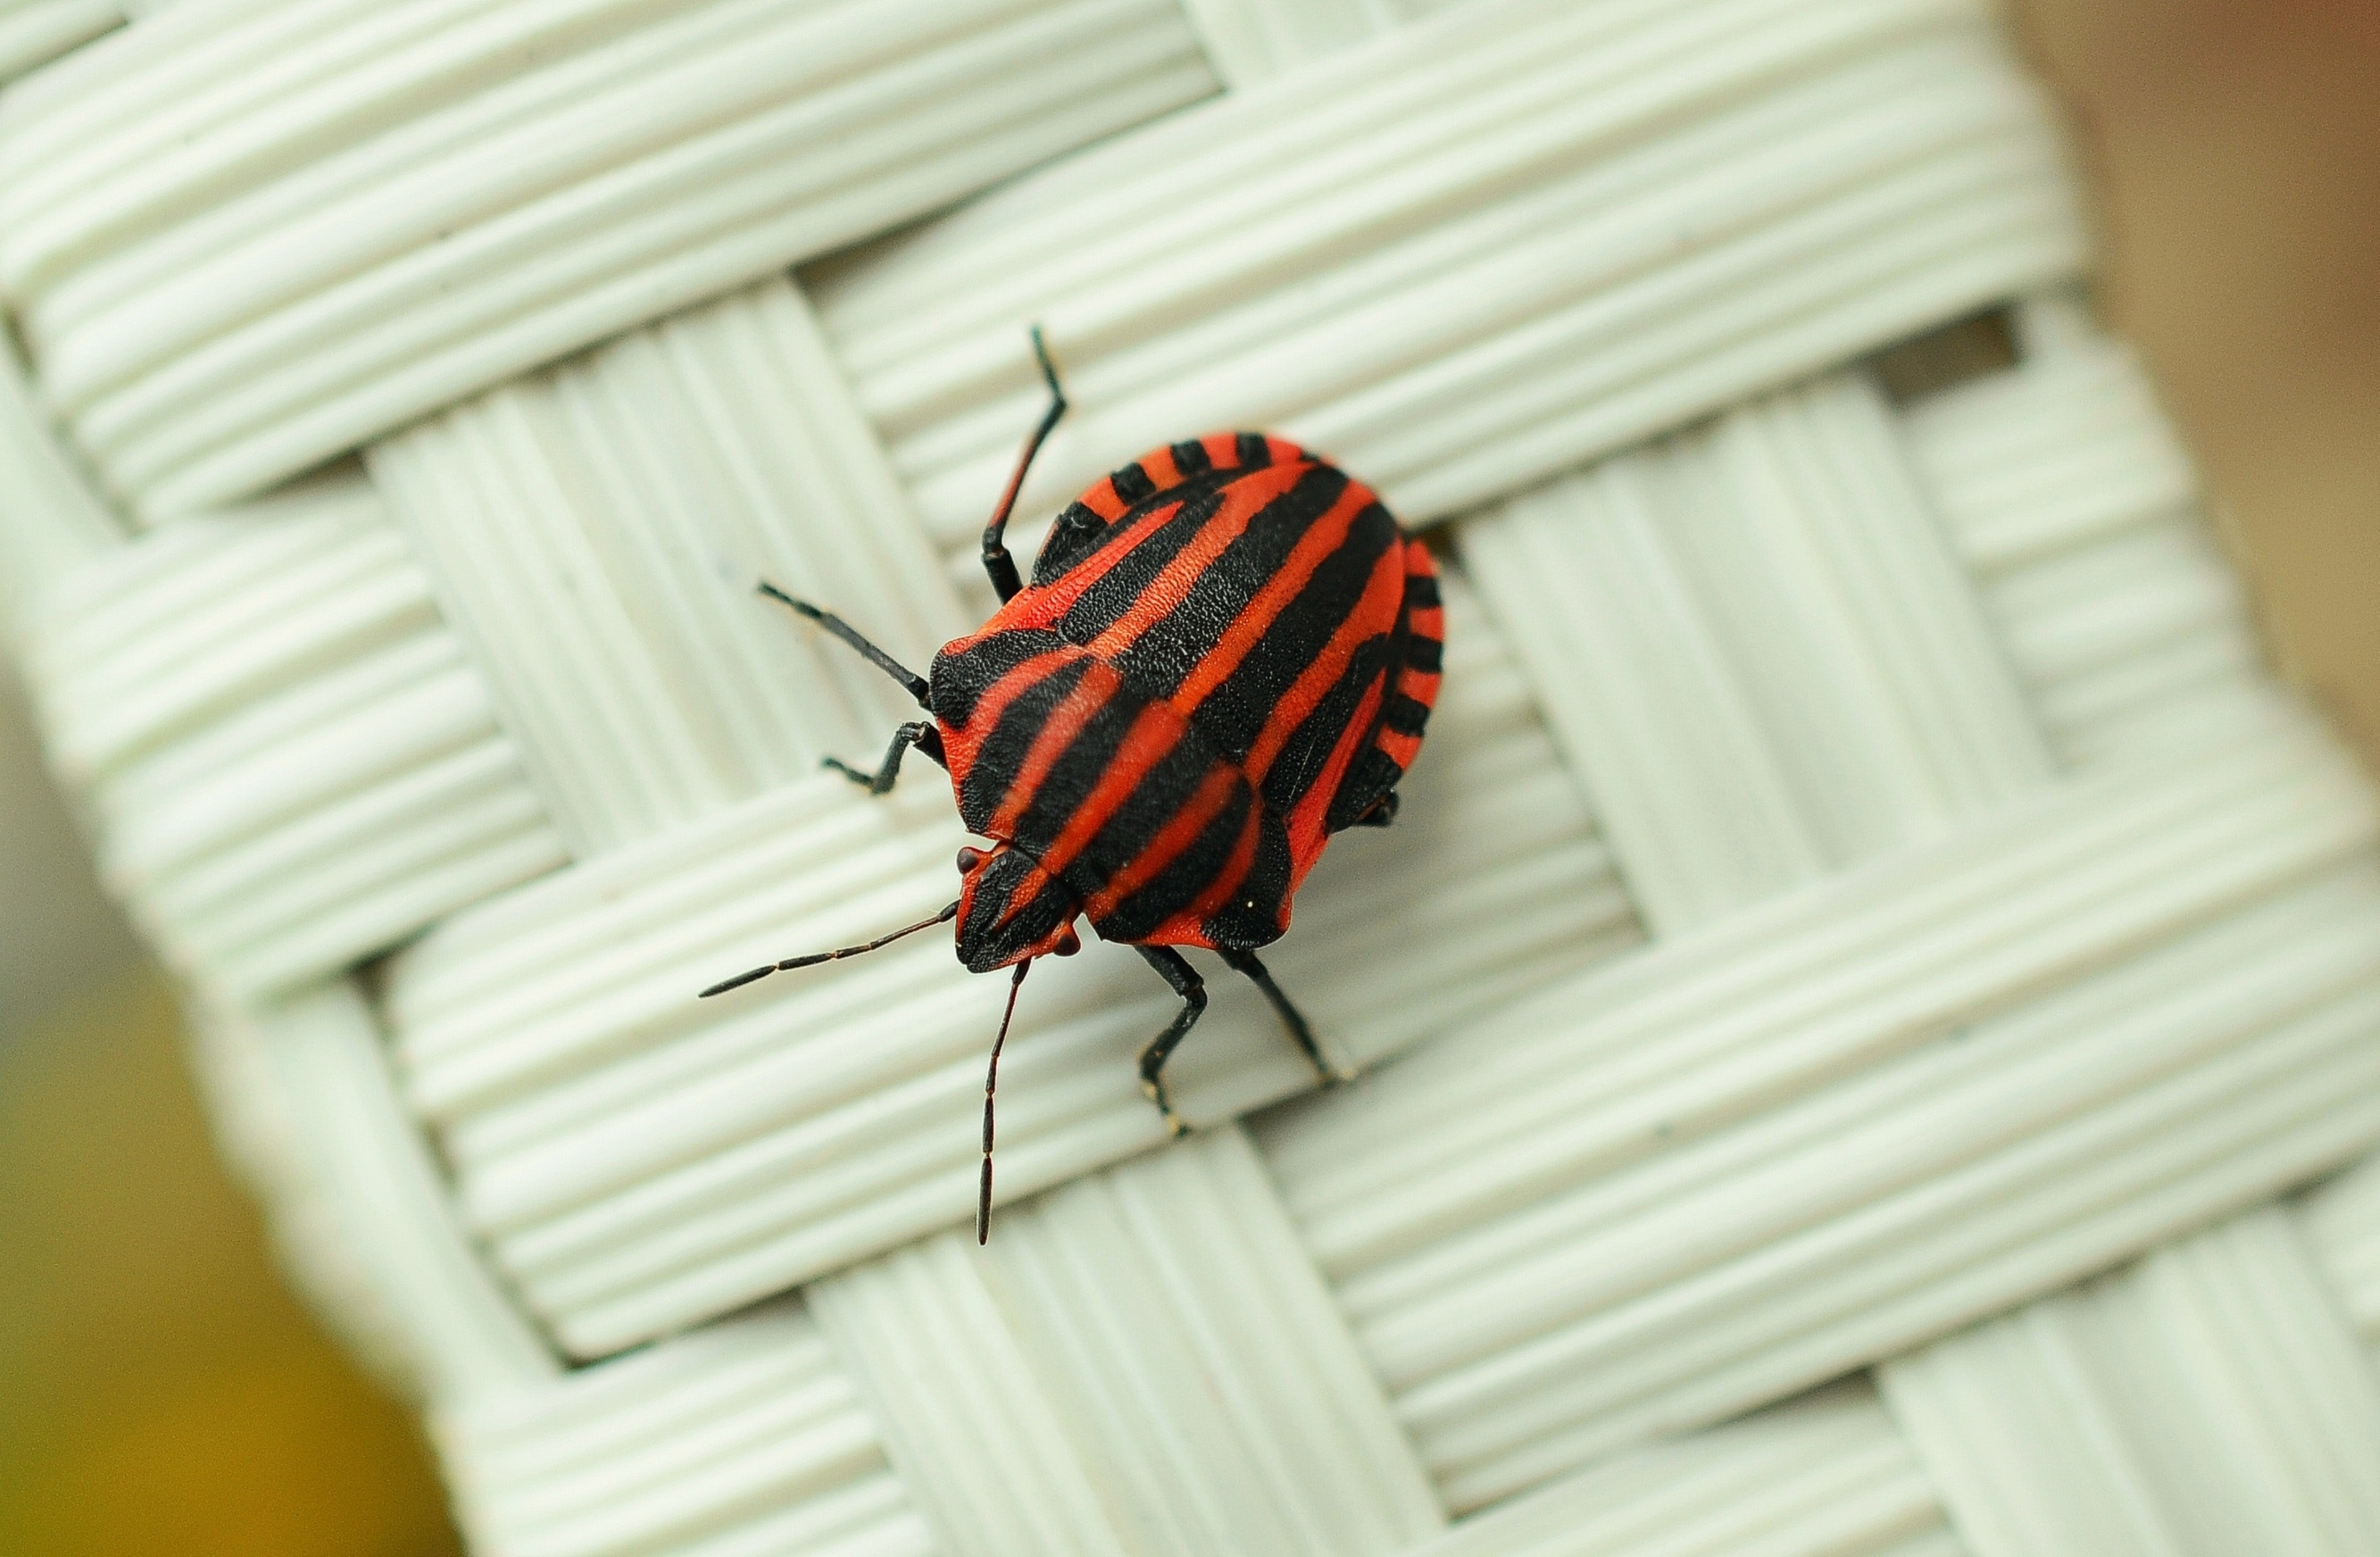 bug-close-up-focus-35051